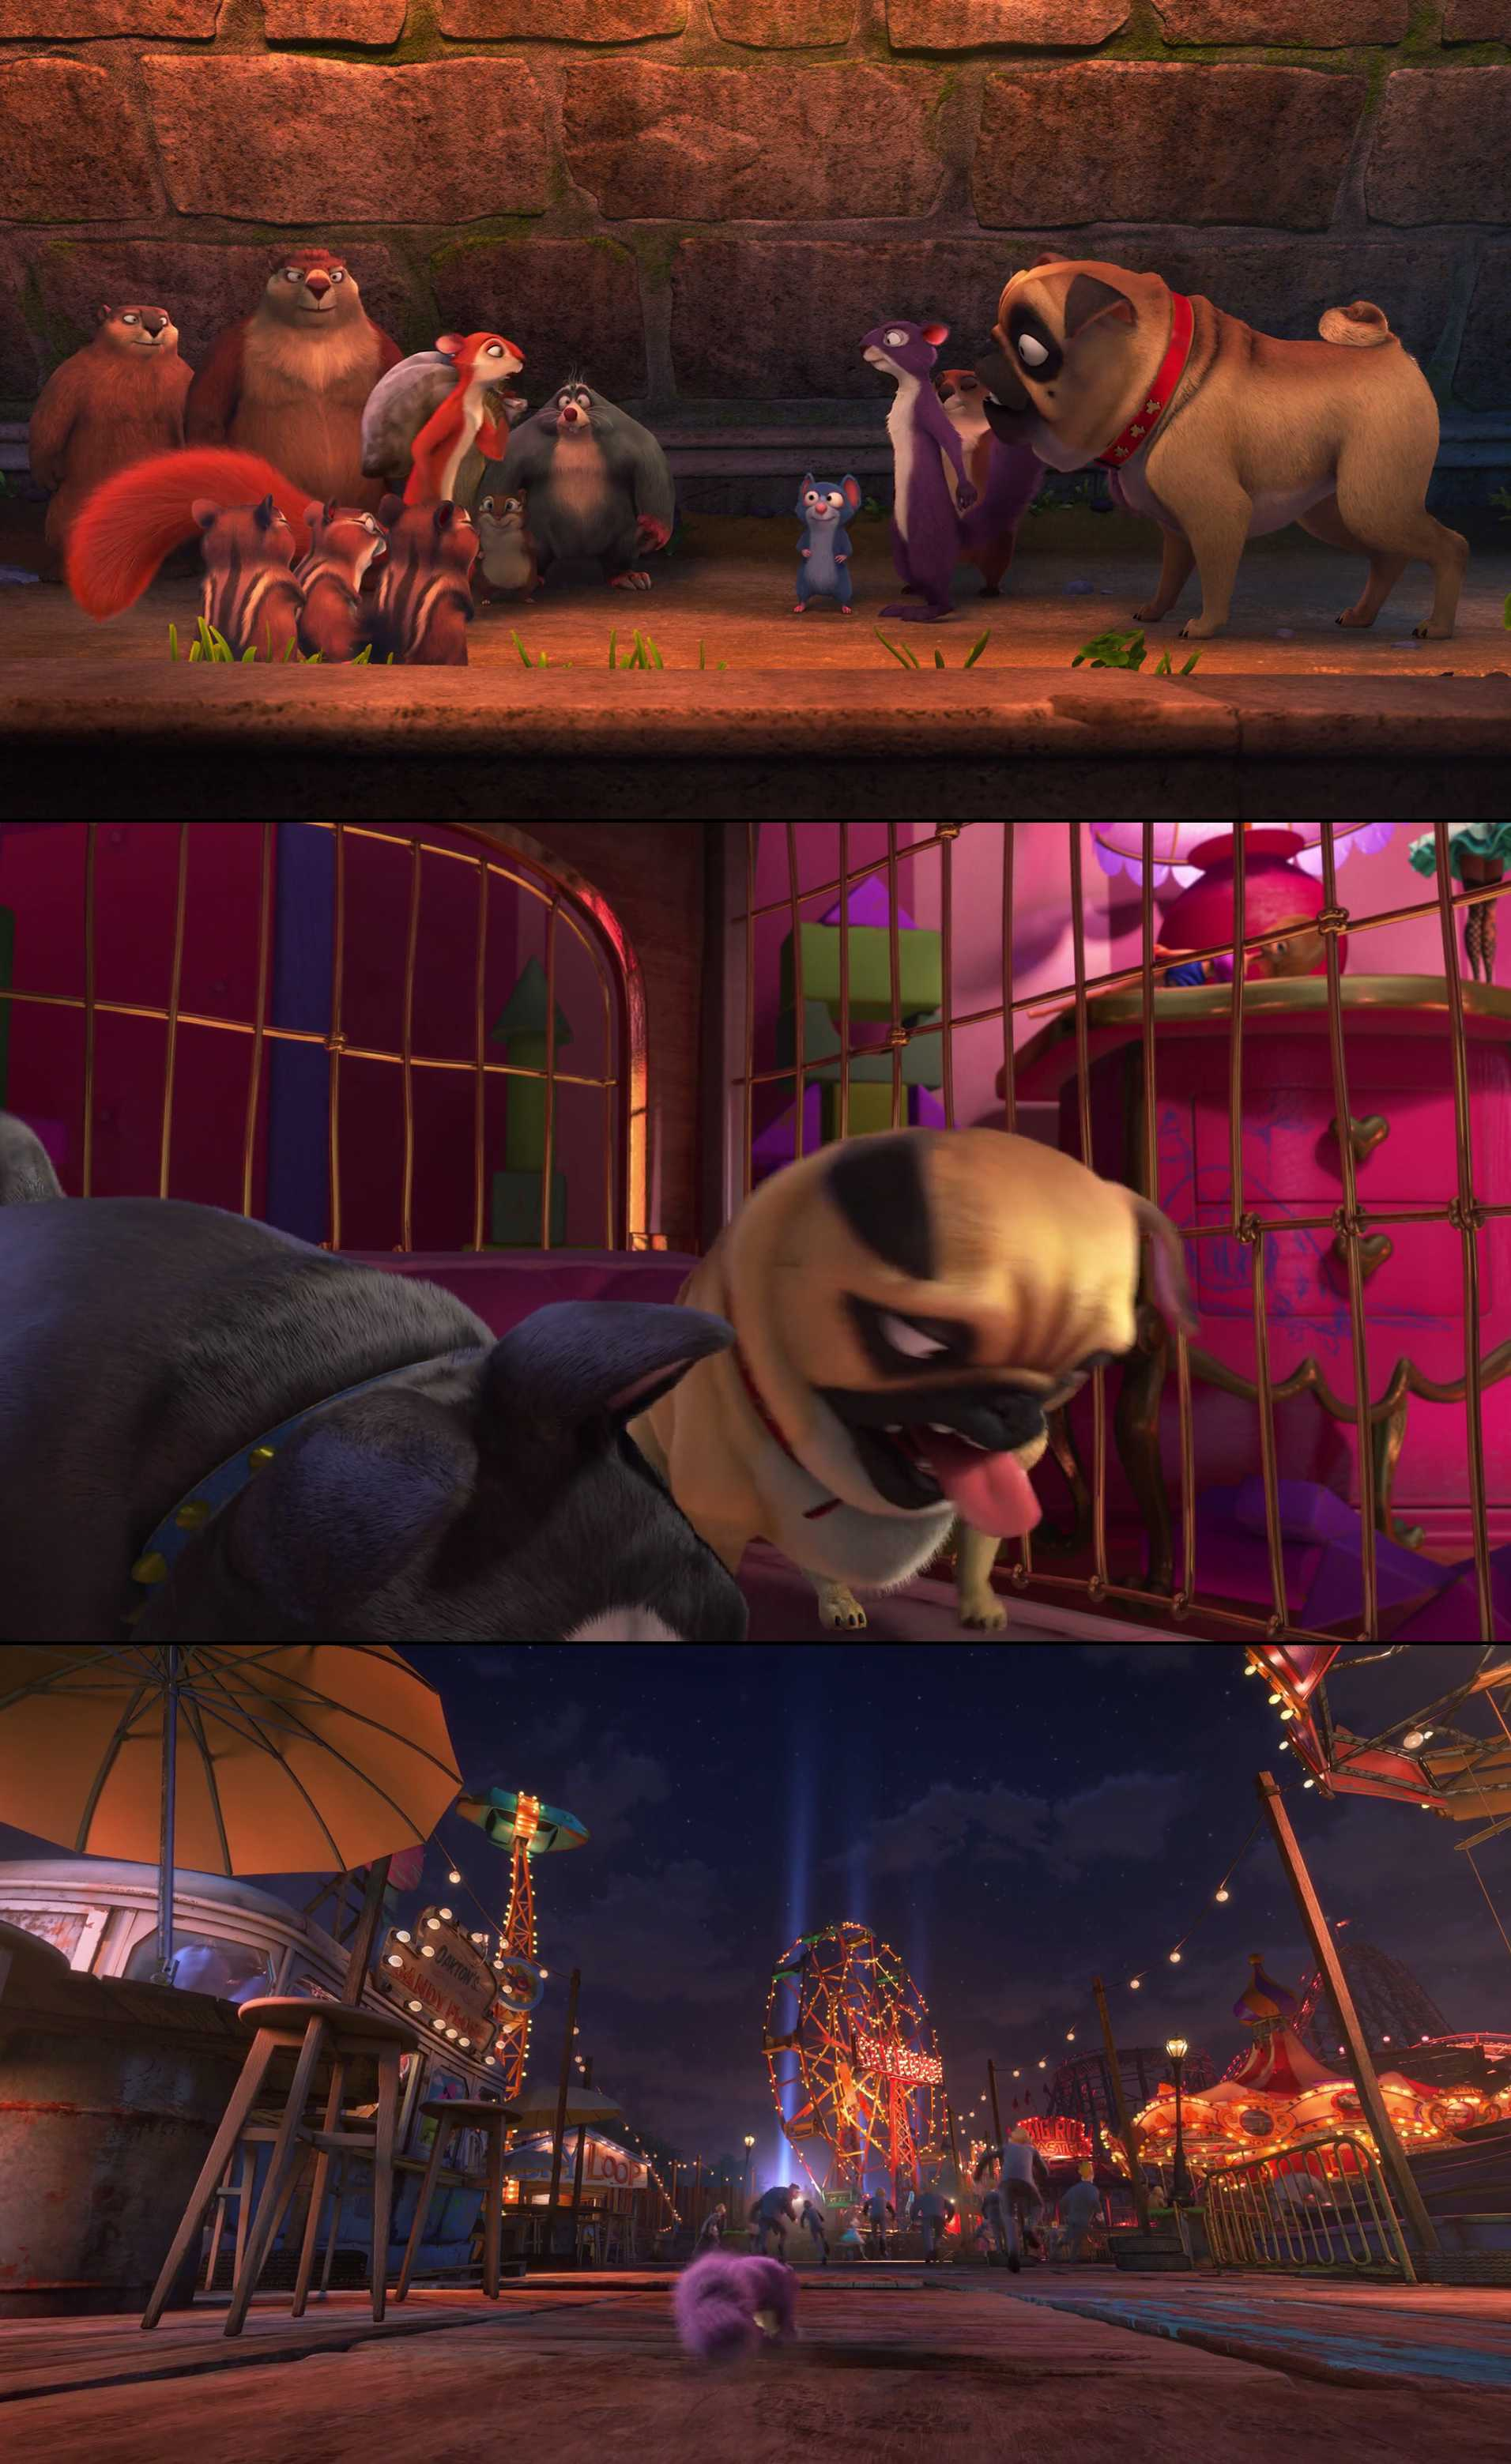 Screenshot of The Nut Job 2: Nutty by Nature Movie